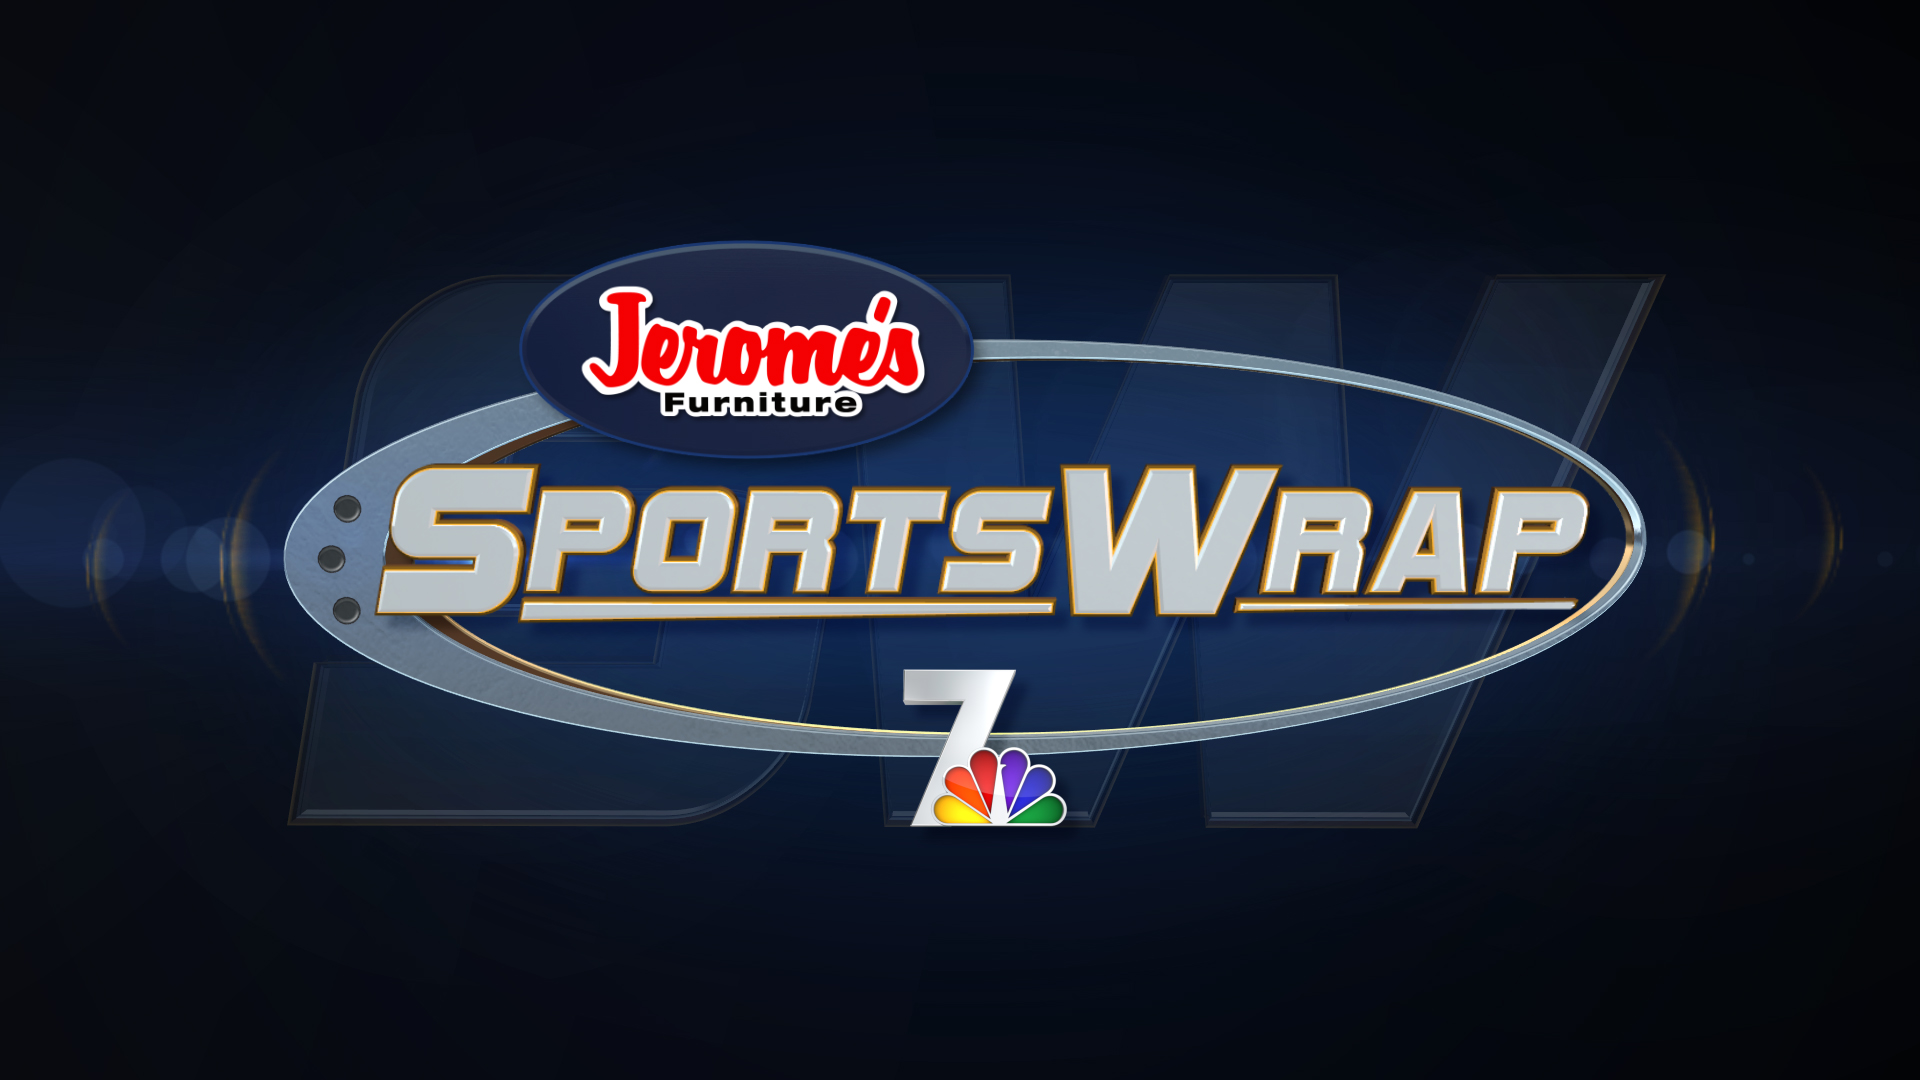 Jerome S Furniture Announces New San Diego Sports Sponsorship